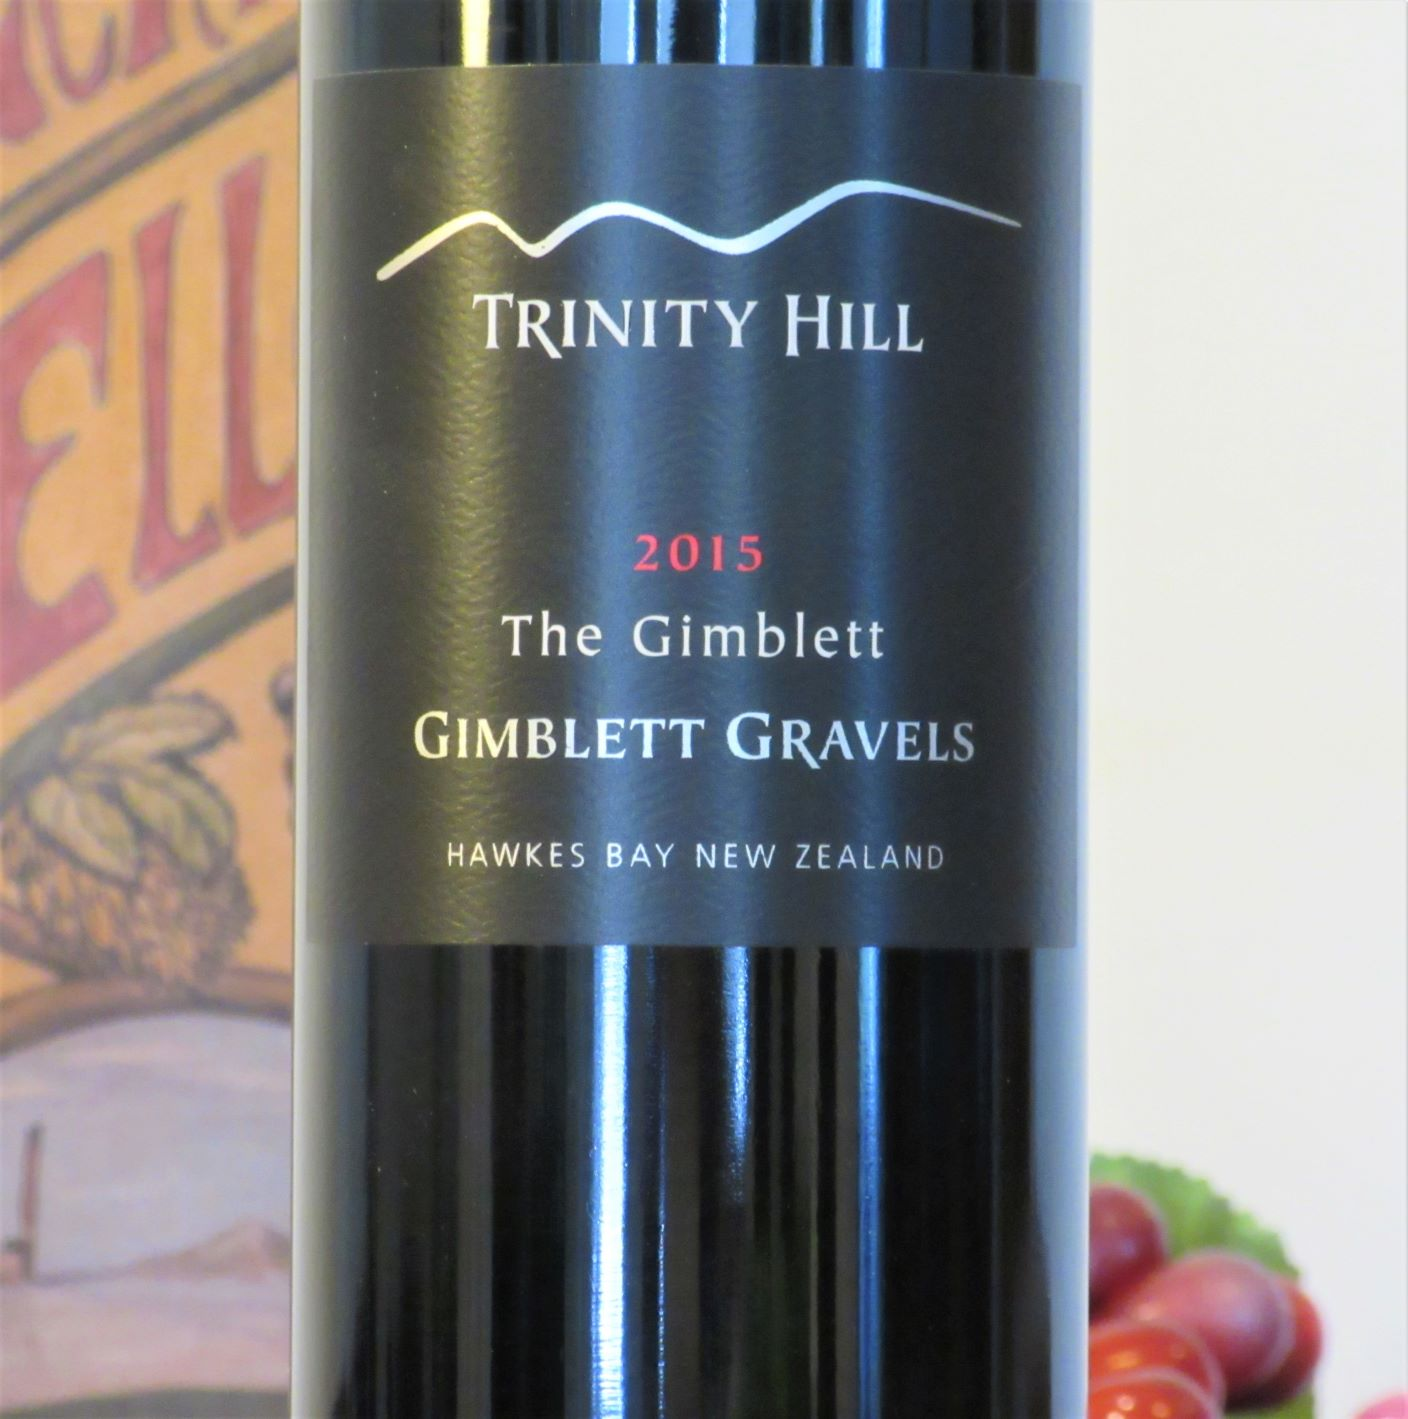 Trinity Hill, `The Gimblett` Gimblett Gravels